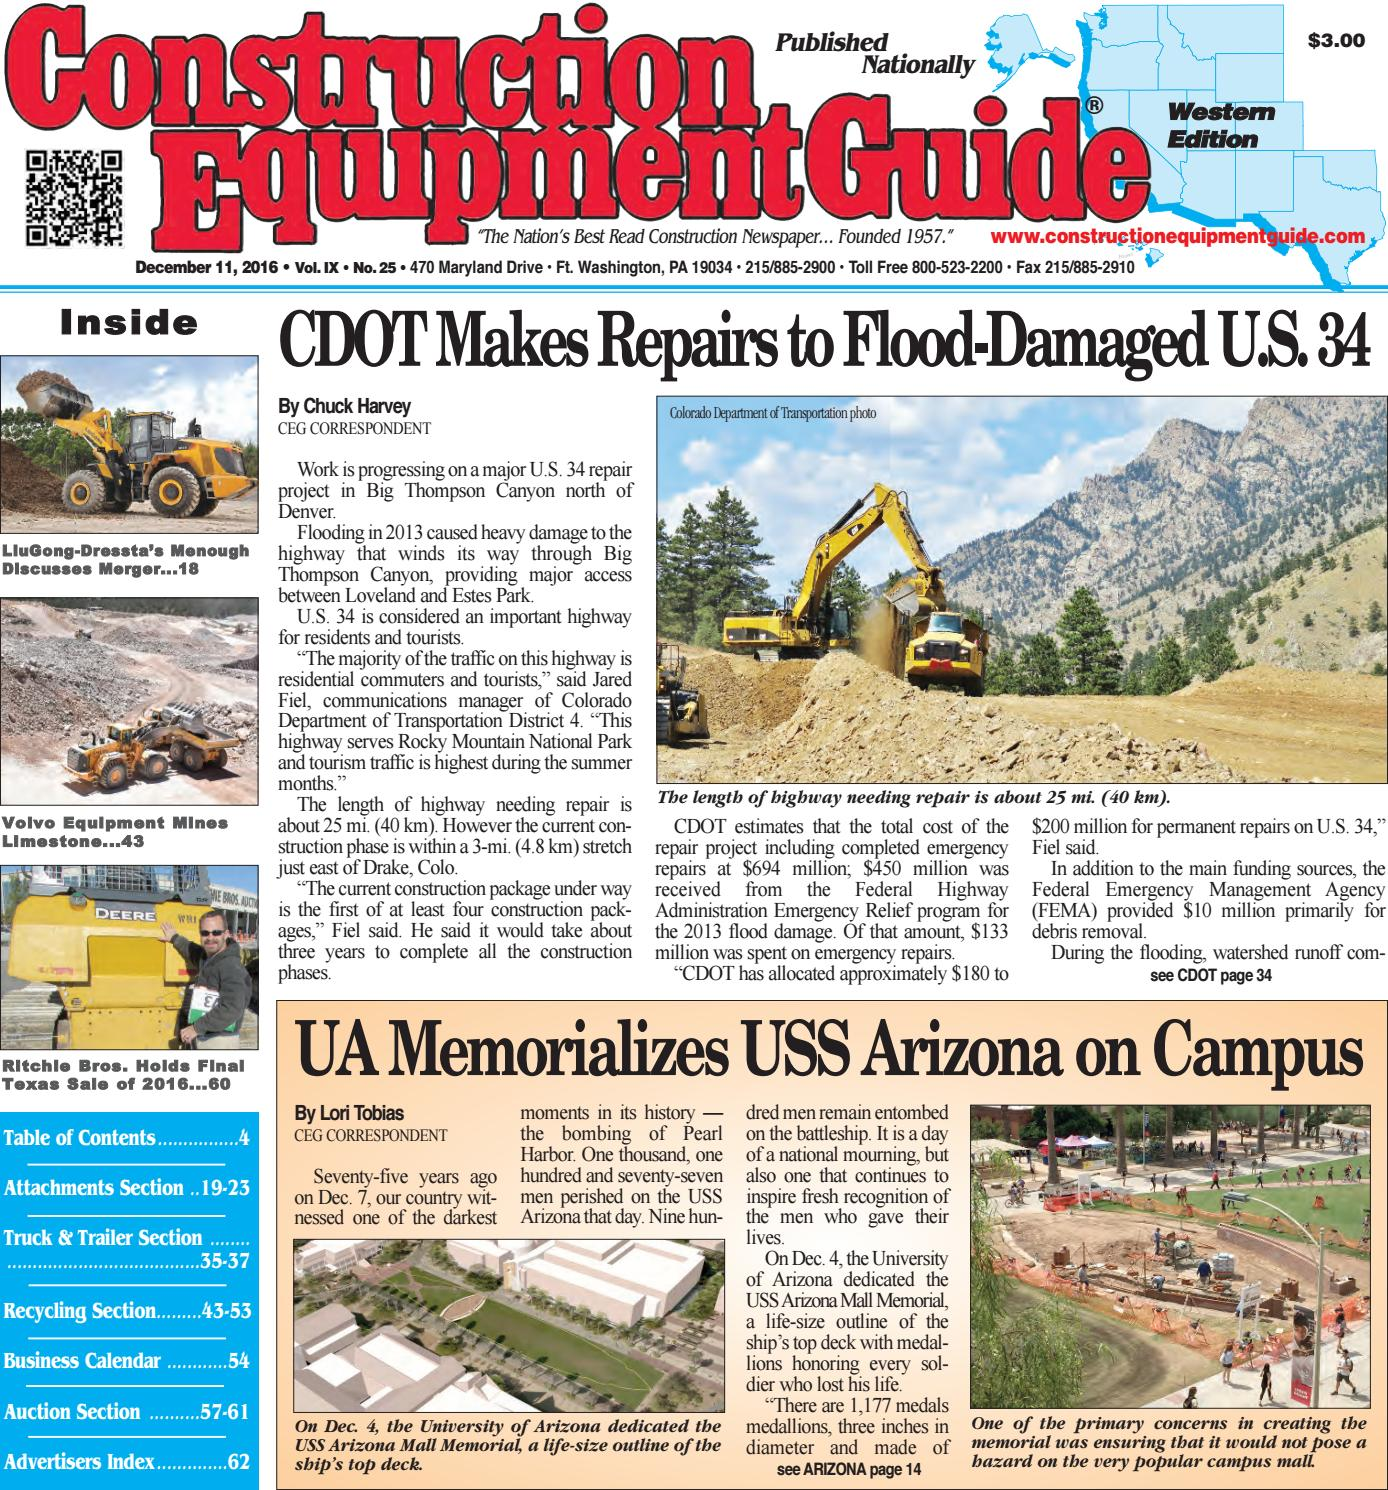 West 25 December 11, 2016 by Construction Equipment Guide - issuu